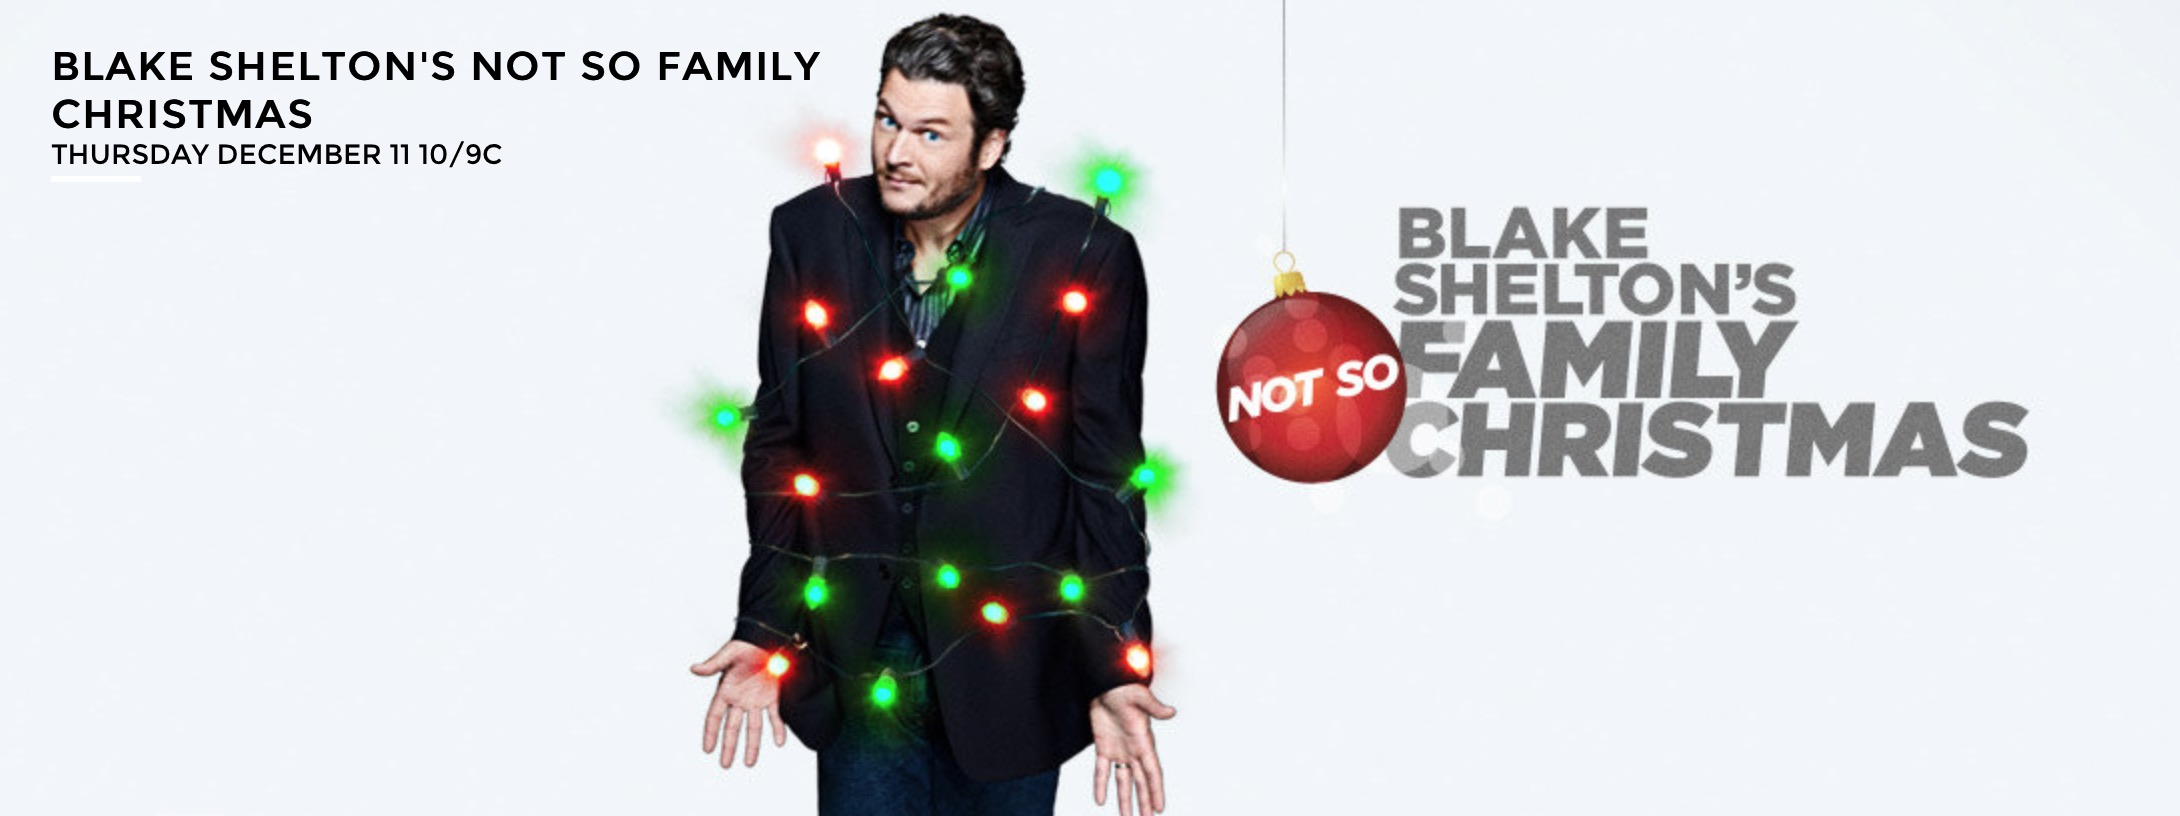 BLAKE SHELTON'S NOT-SO-FAMILY CHRISTMAS